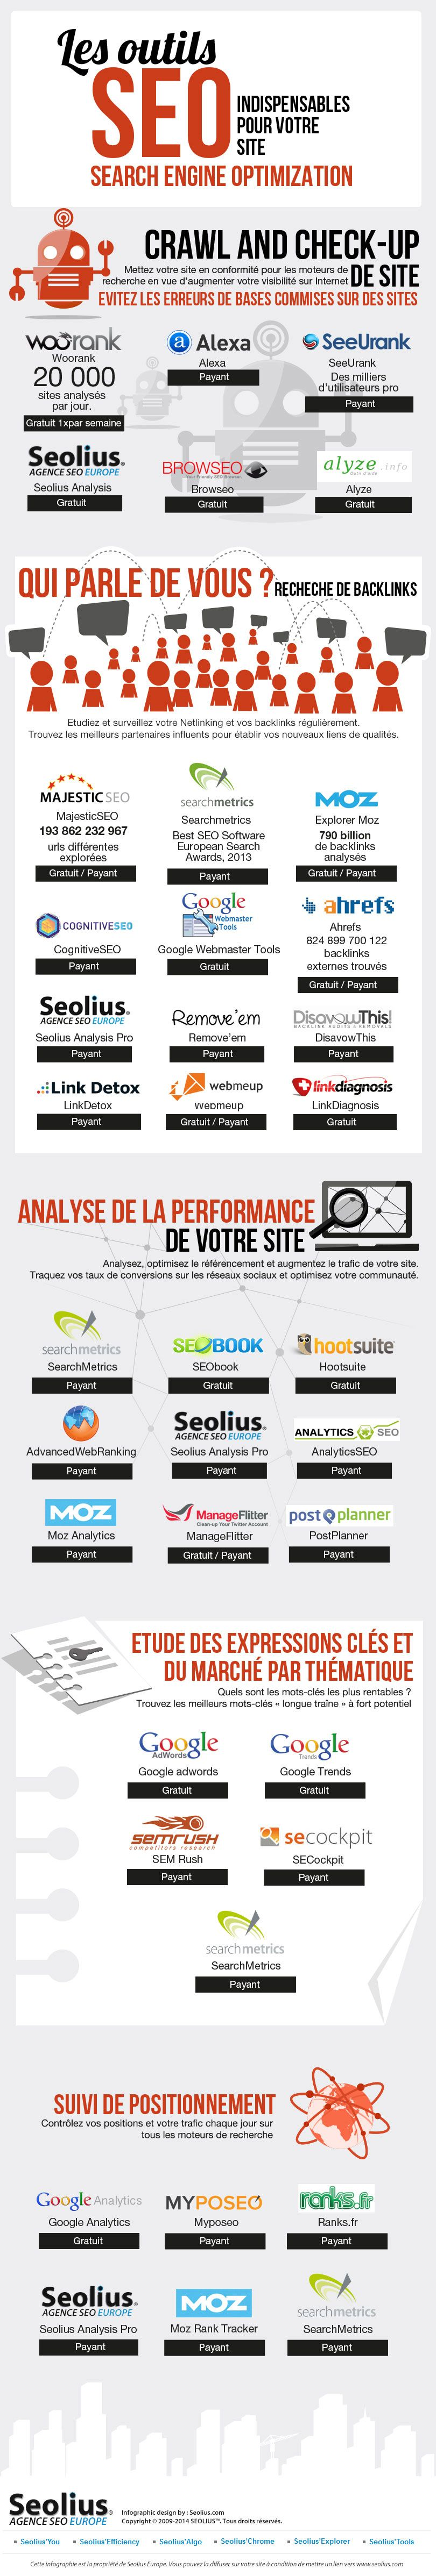 Les Outils Seo Indispensables Pour Votre Site Small Business Infographic Small Business Digital Marketing Small Business Seo